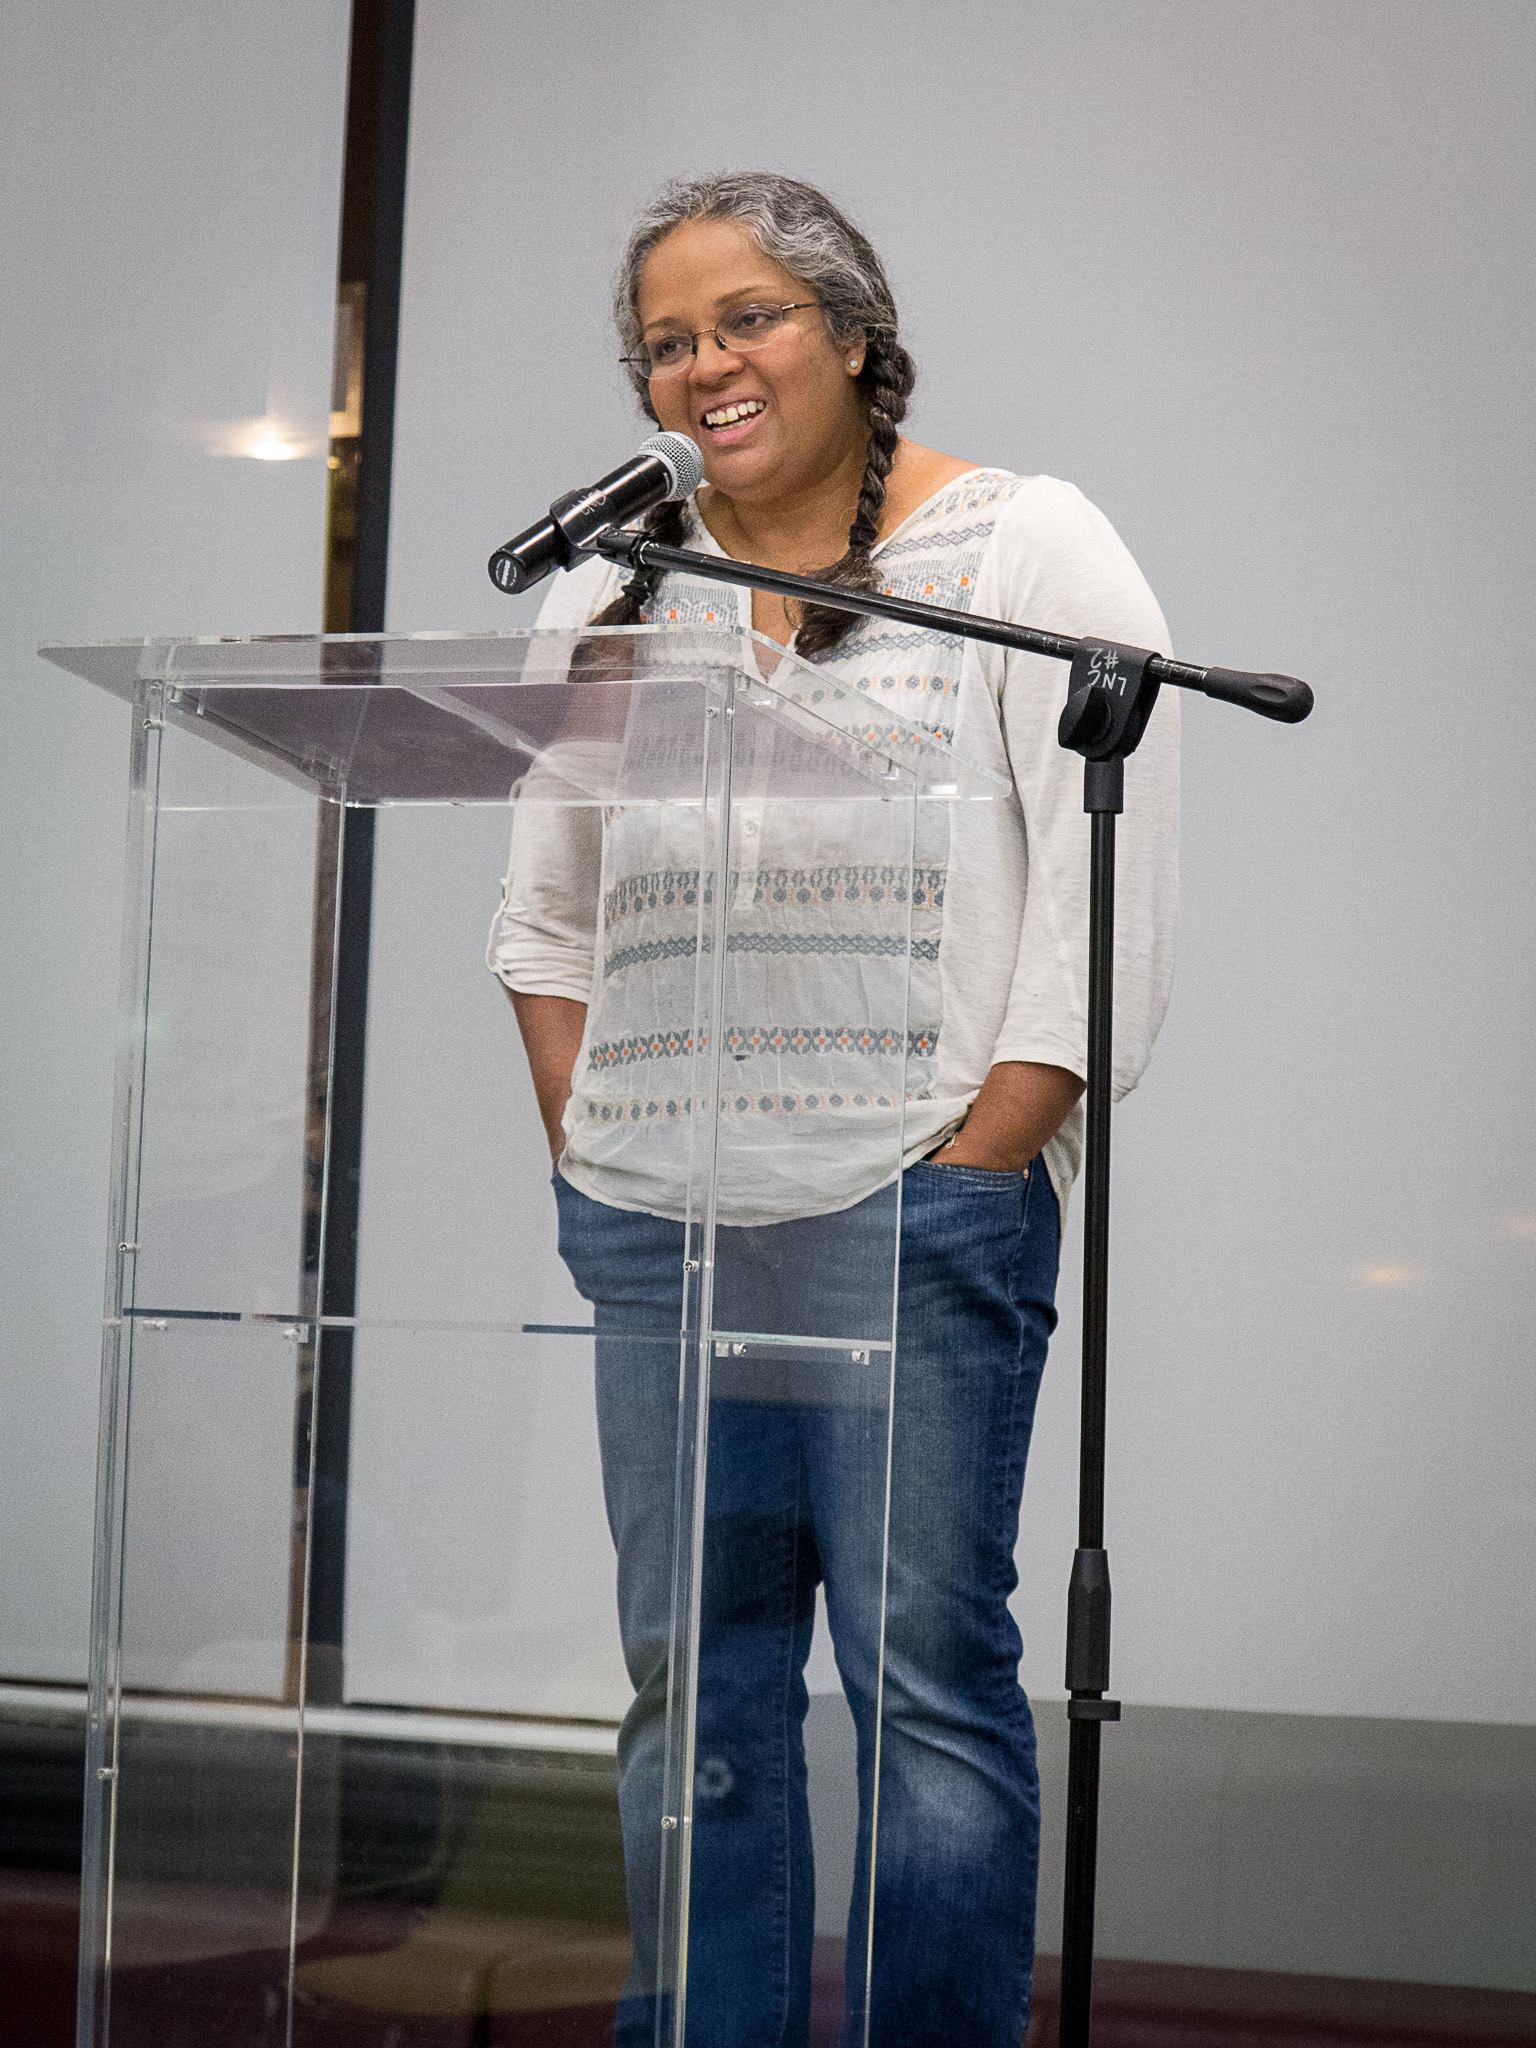 Festival director Mary Anne Mohanraj